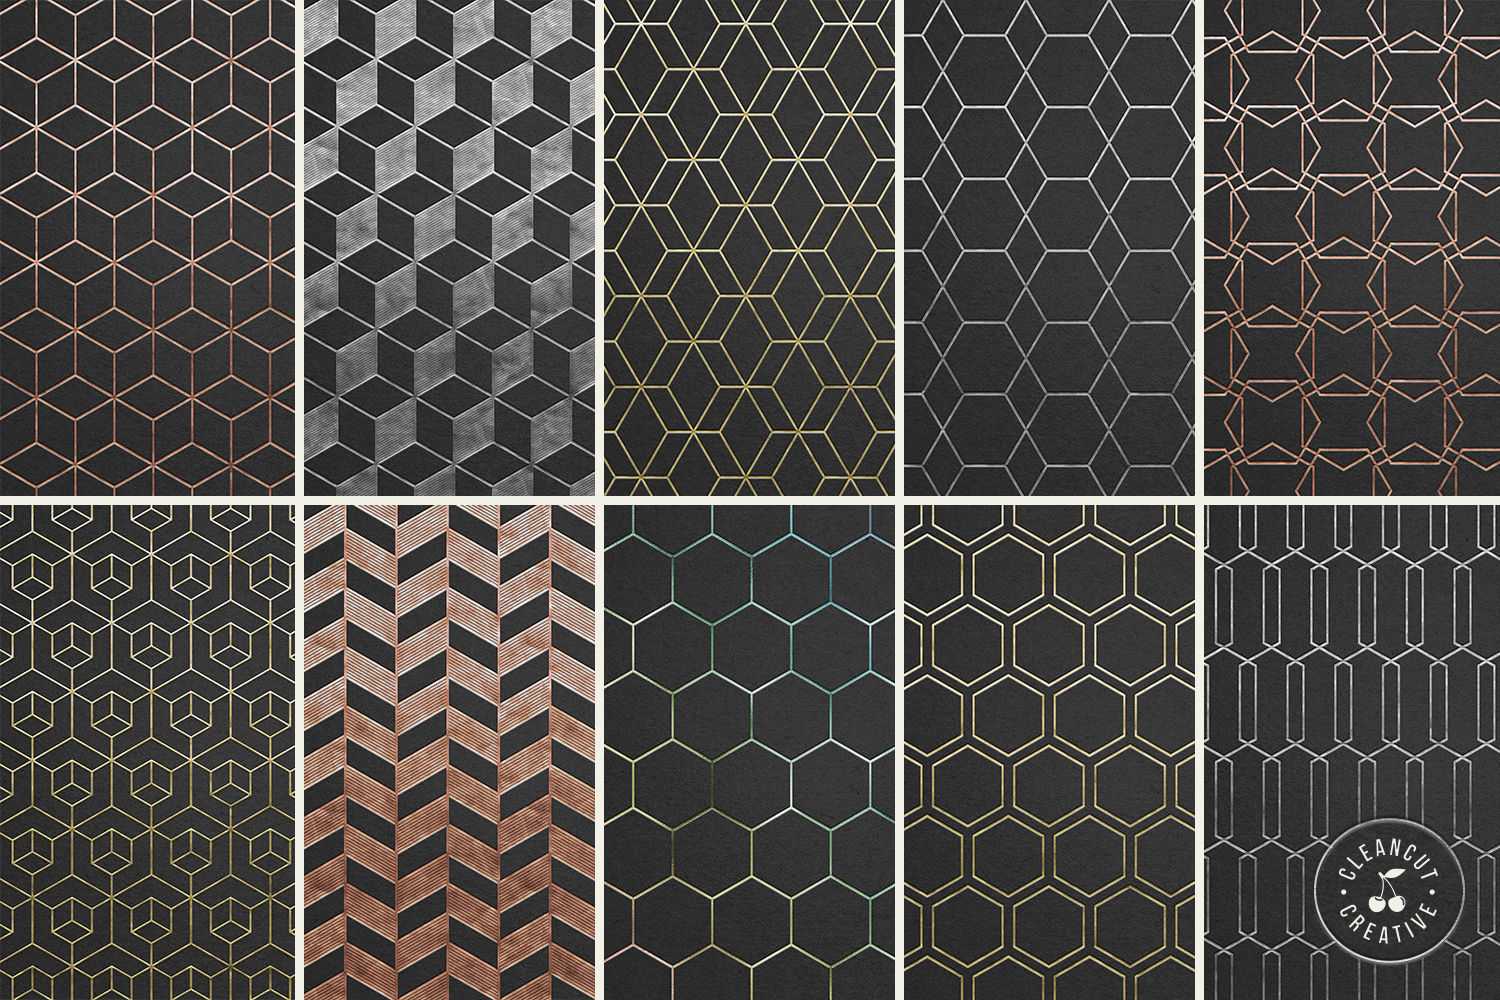 Foil Quill designs SVG   20 Geometric Single Line Patterns example image 2